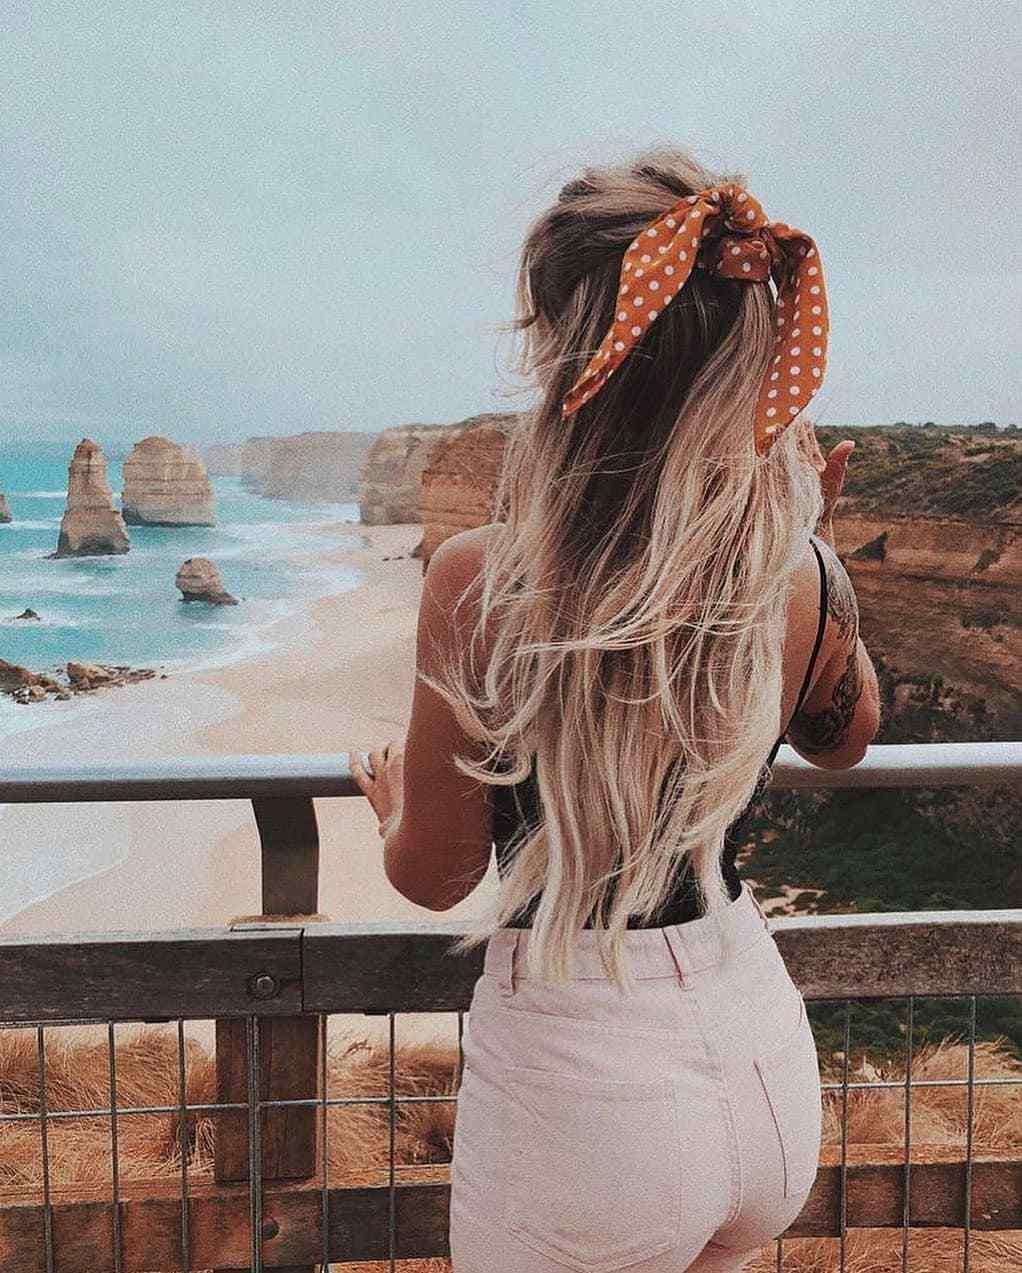 40+ Awesome Hairstyles For Girls With Long Hair images 9